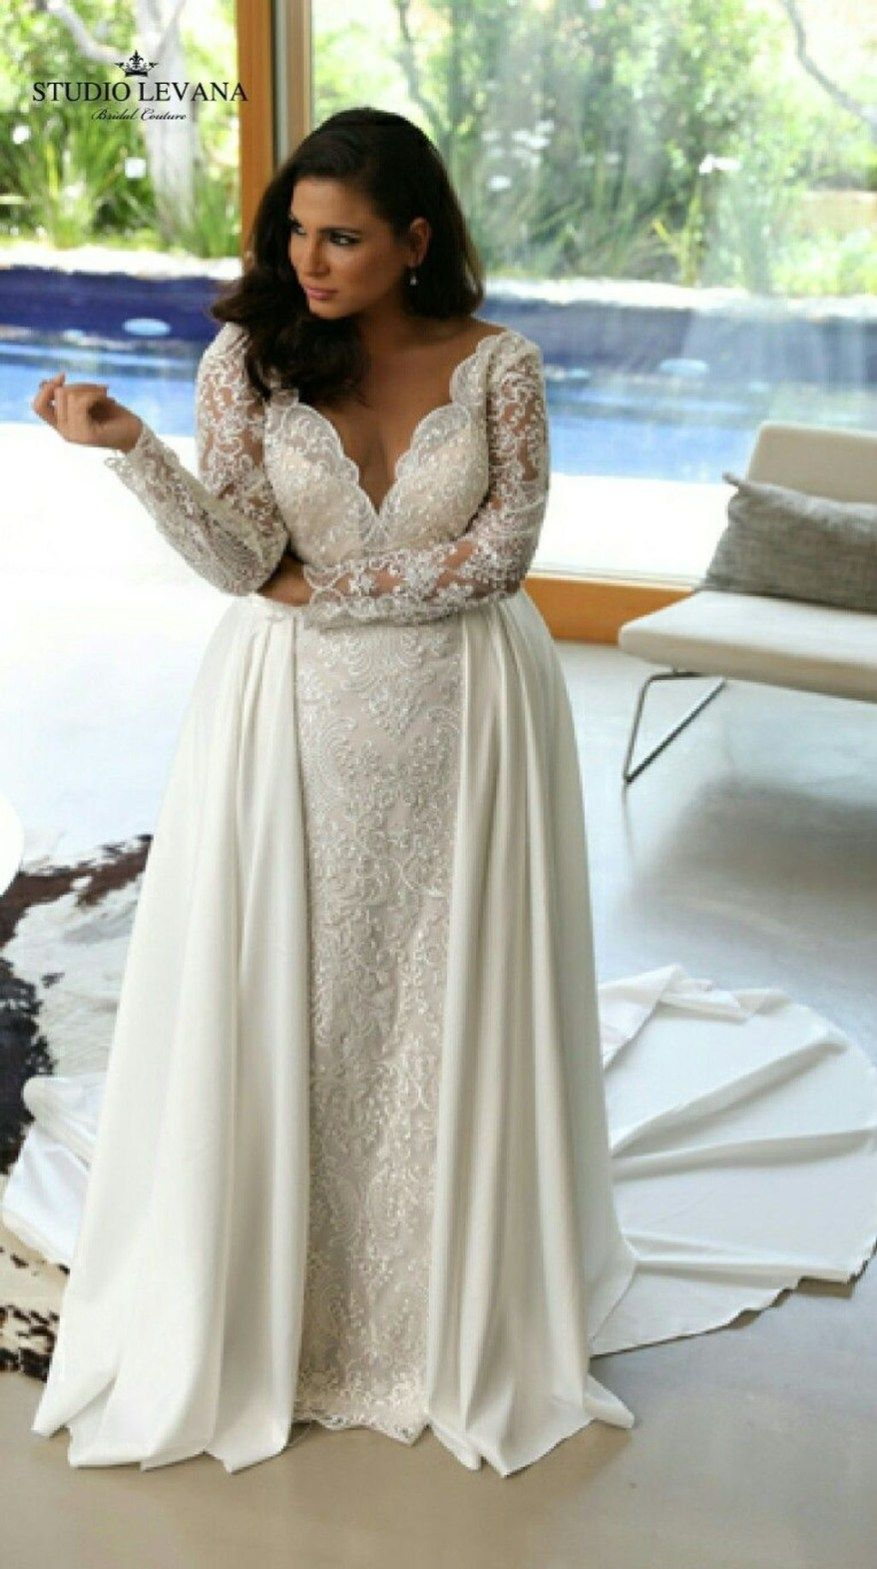 af6d5c043a0 Plus Size Wedding Dresses With Sleeves Pinterest - Data Dynamic AG